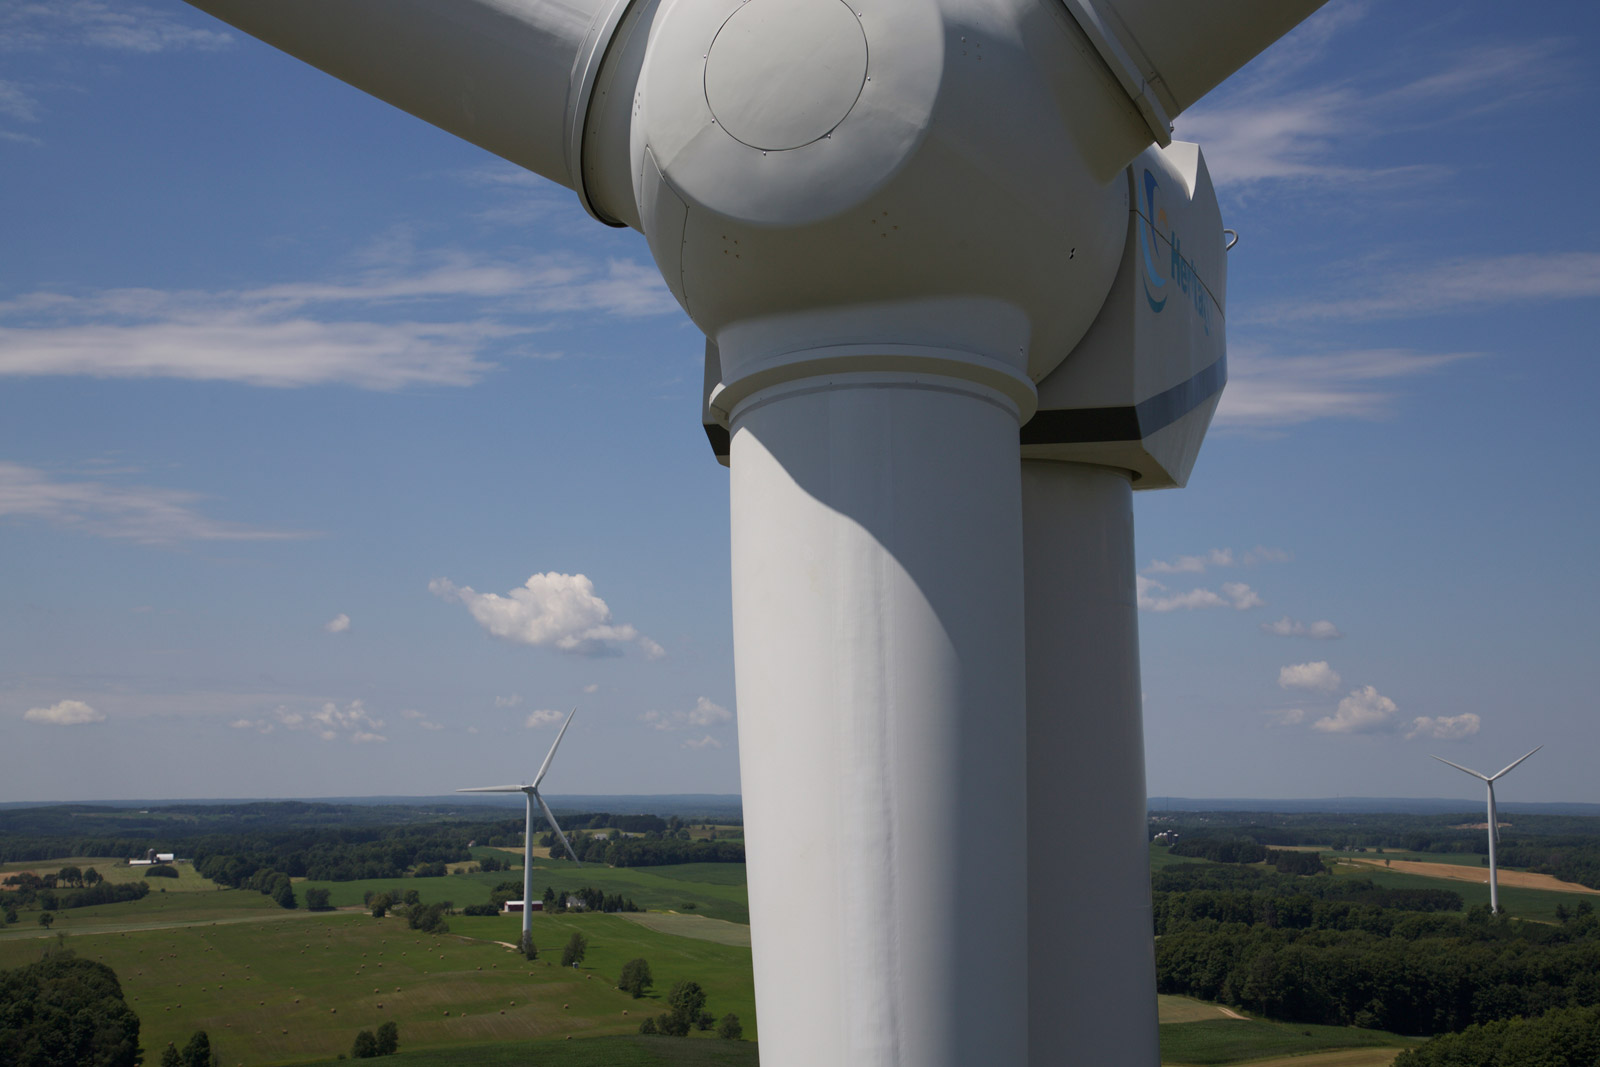 Wind Turbine Inspections